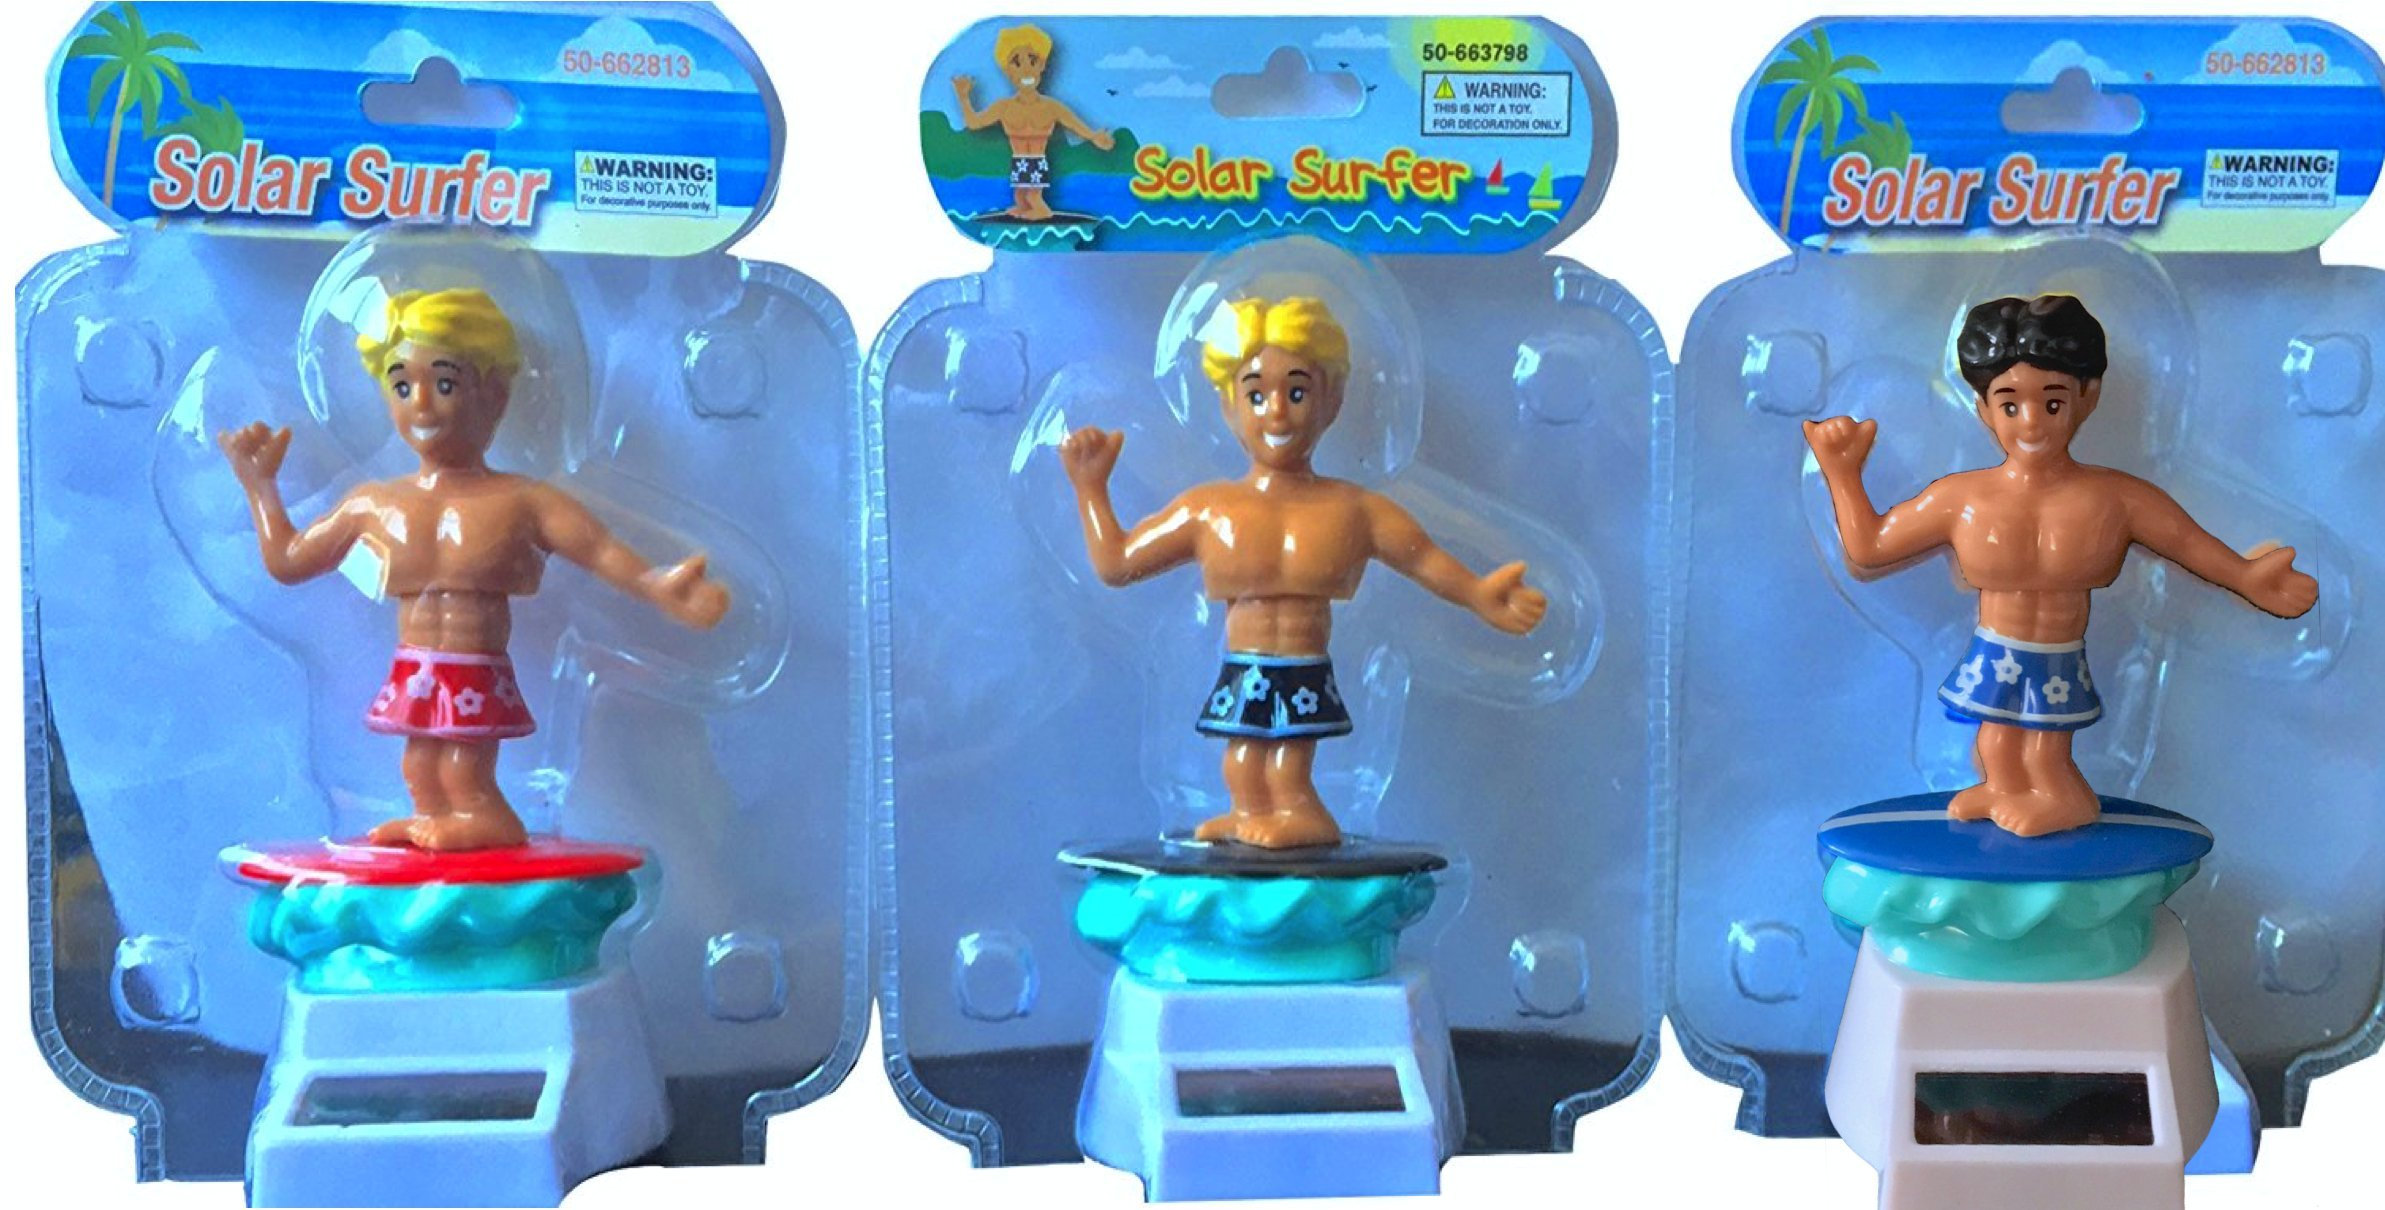 Solar Surfer Dude Pack of 3 the Complete Rare Hard to Find Solar Surfers No Batteries Needed